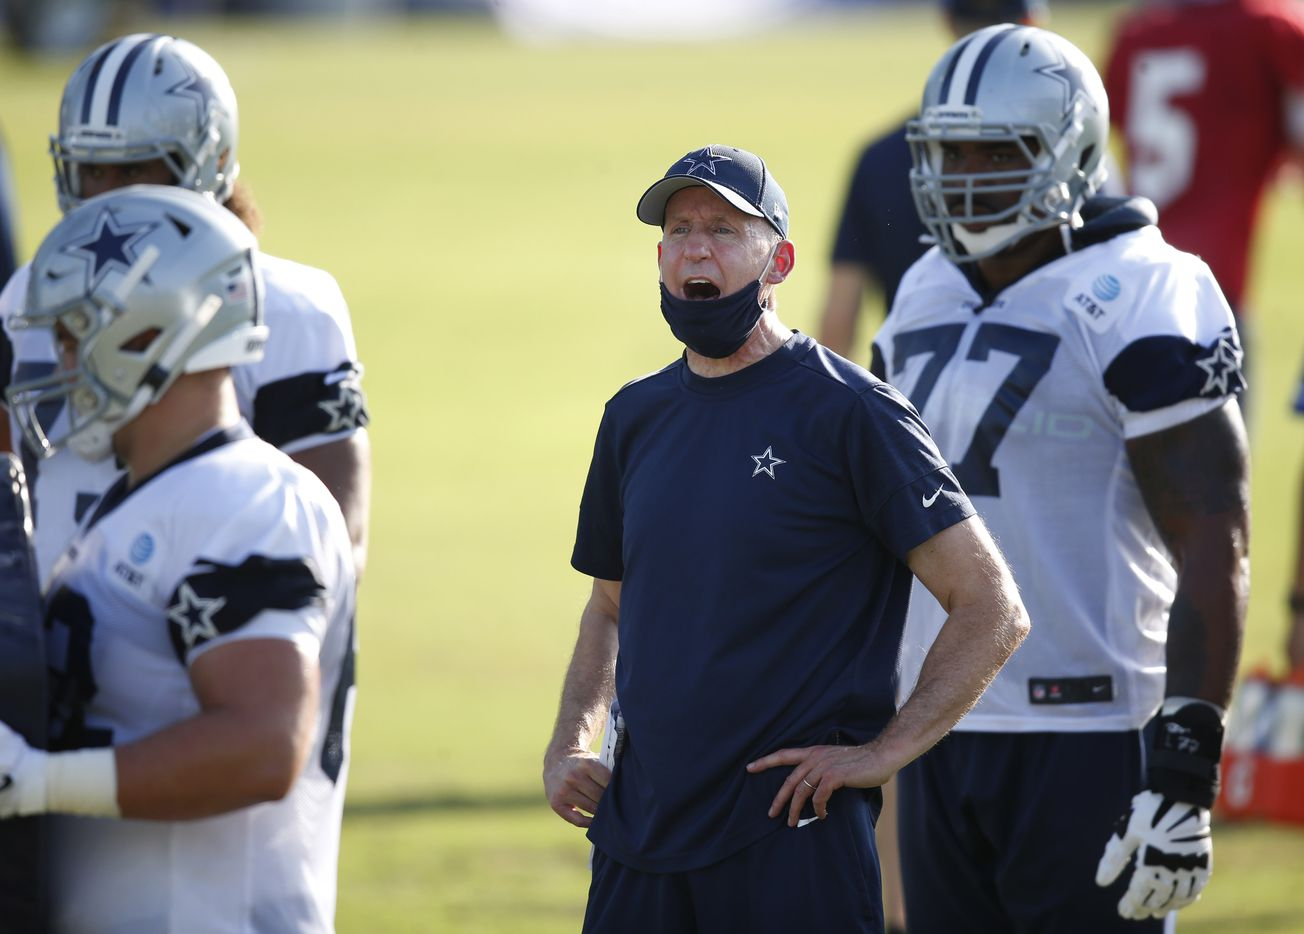 Dallas Cowboys offensive line coach Joe Philbin talks to a player during the first day of training camp at Dallas Cowboys headquarters at The Star in Frisco, Texas on Friday, August 14, 2020. (Vernon Bryant/The Dallas Morning News)